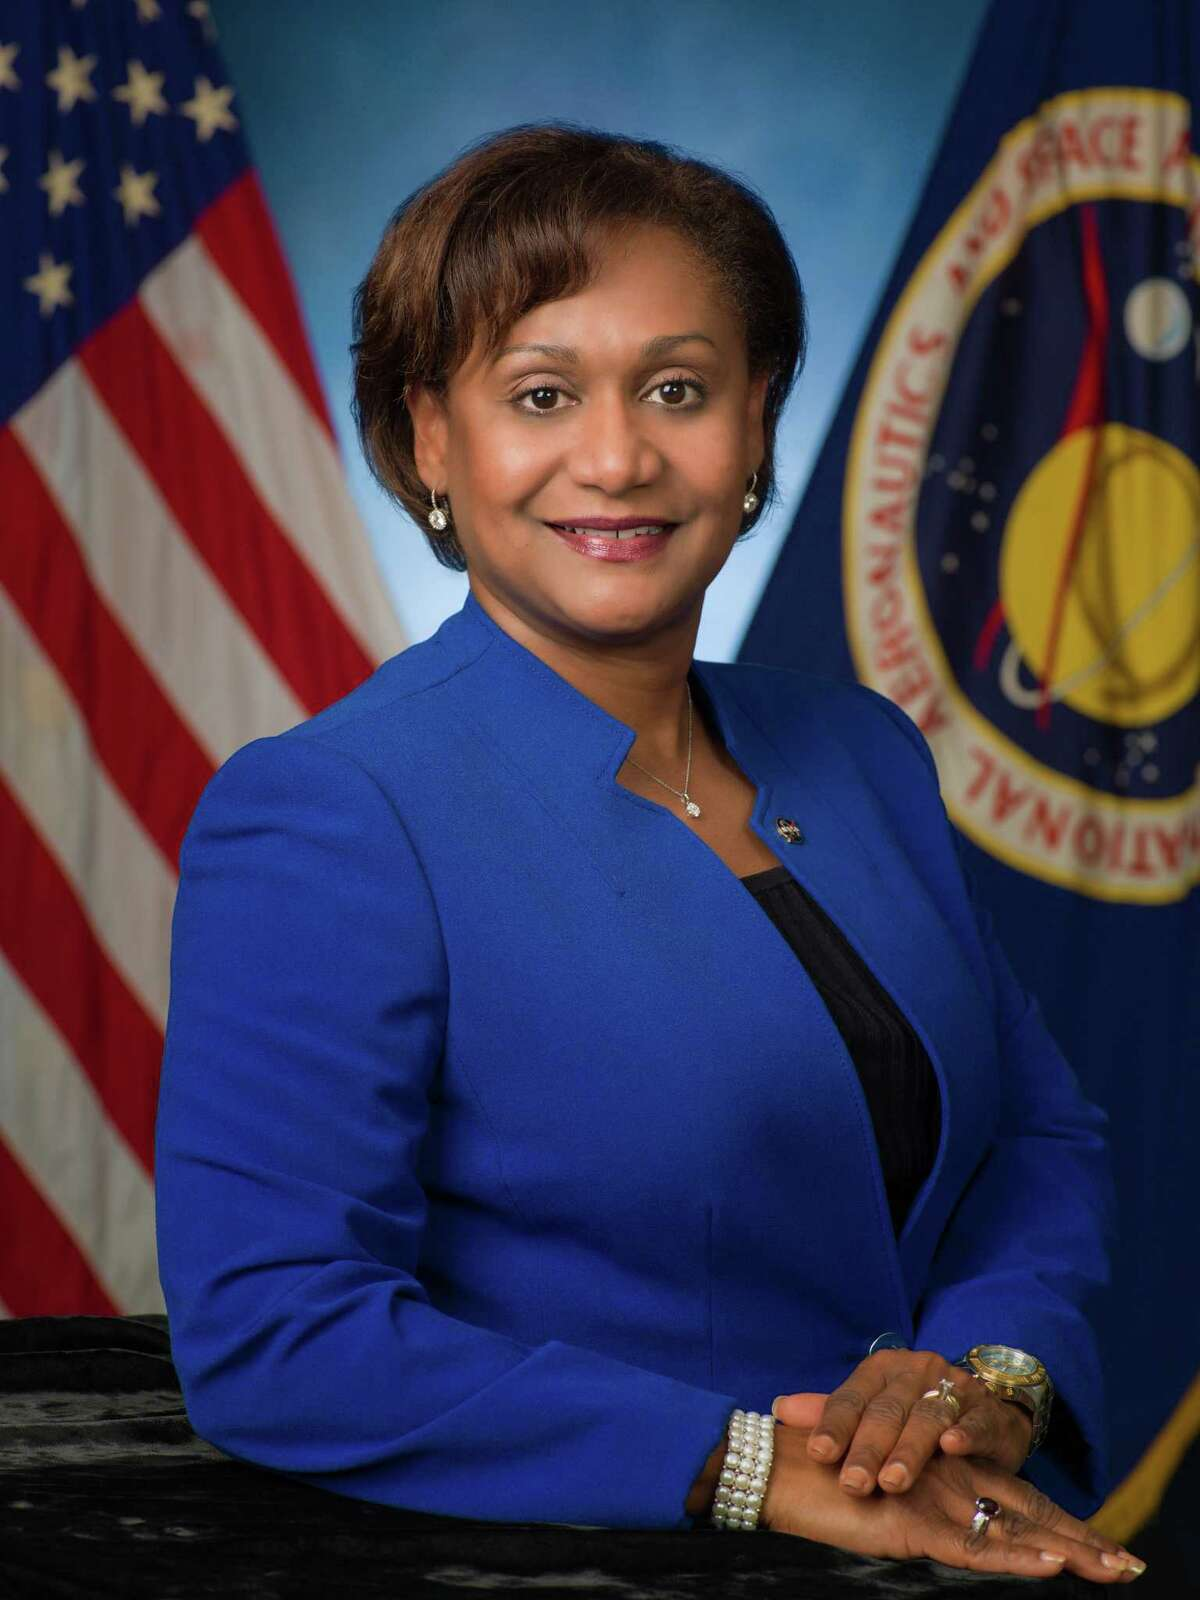 PHOTOS: JOHNSON SPACE CENTER Vanessa Wyche was named new deputy director of NASA's Johnson Space Center in Houston. >>See how the center has changed over the decades...